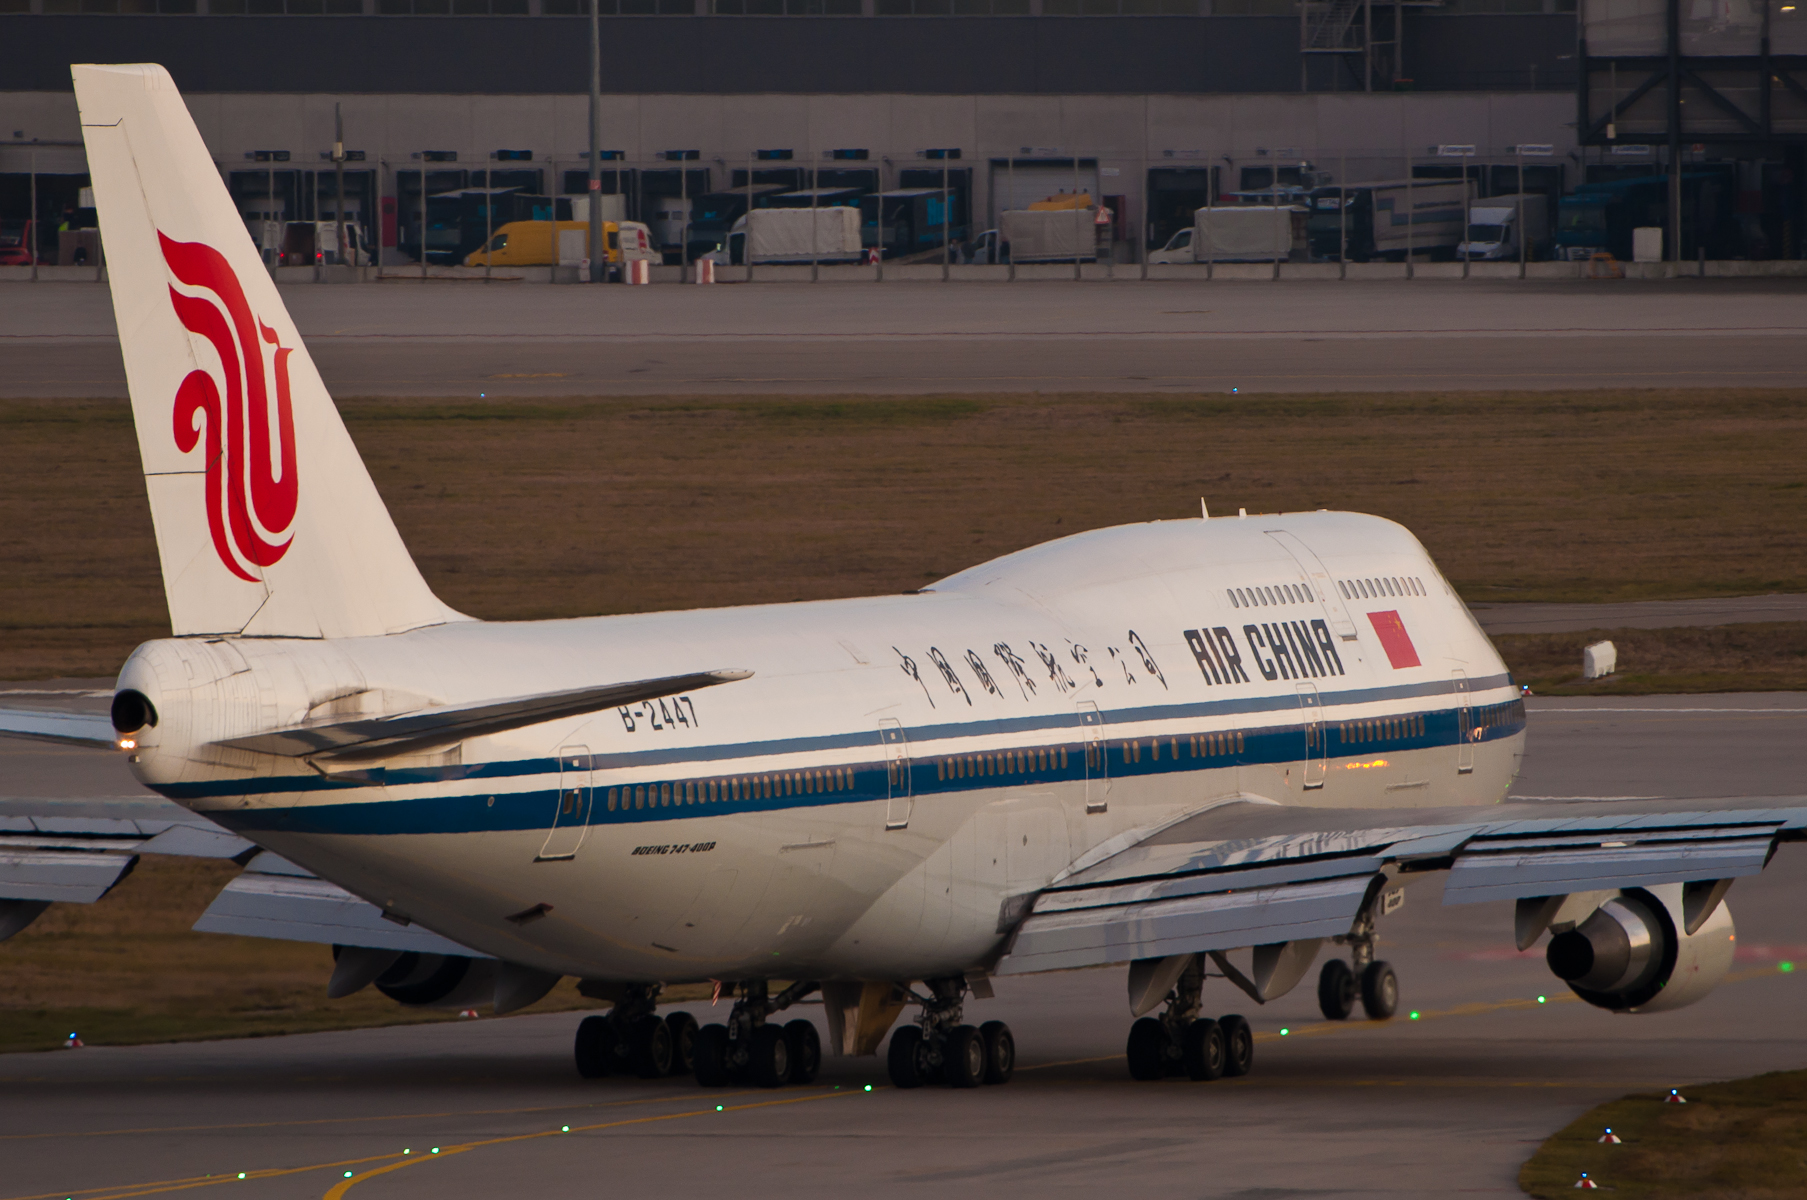 File:Air China B747-4J6 B-2447 EDDS 06.jpg